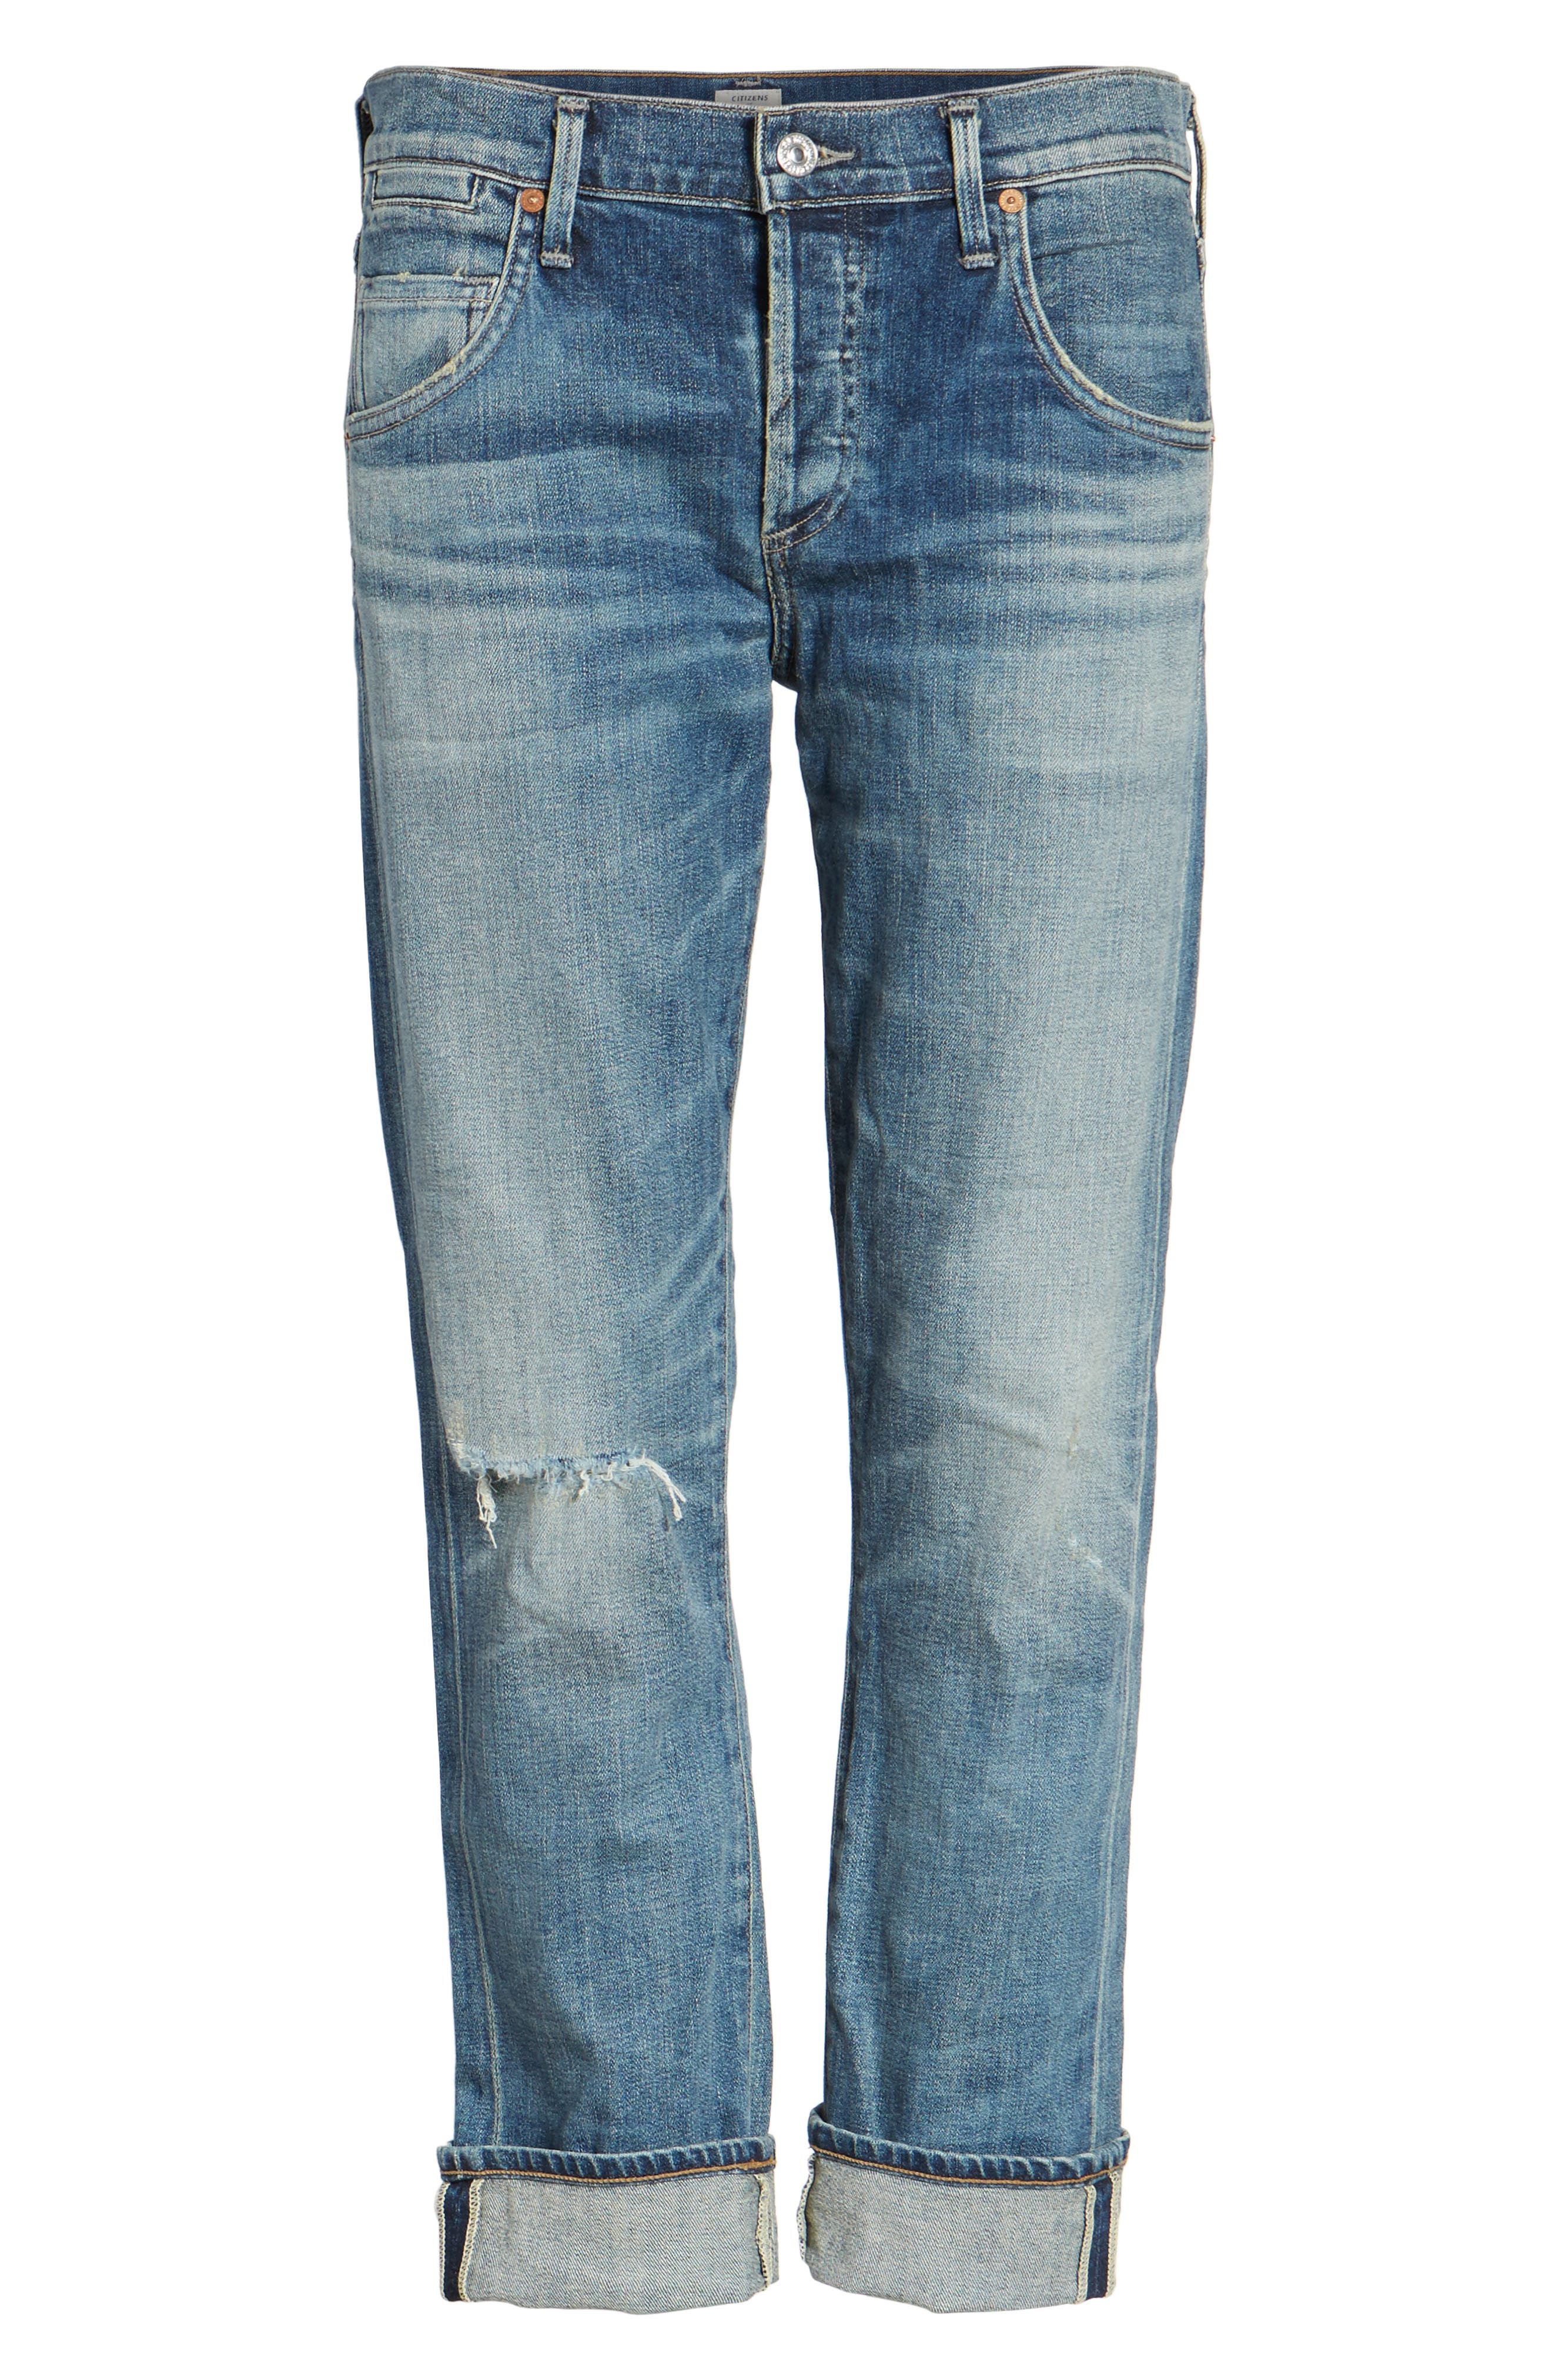 CITIZENS OF HUMANITY 'Emerson' Ripped Slim Boyfriend Jeans, Main, color, 469